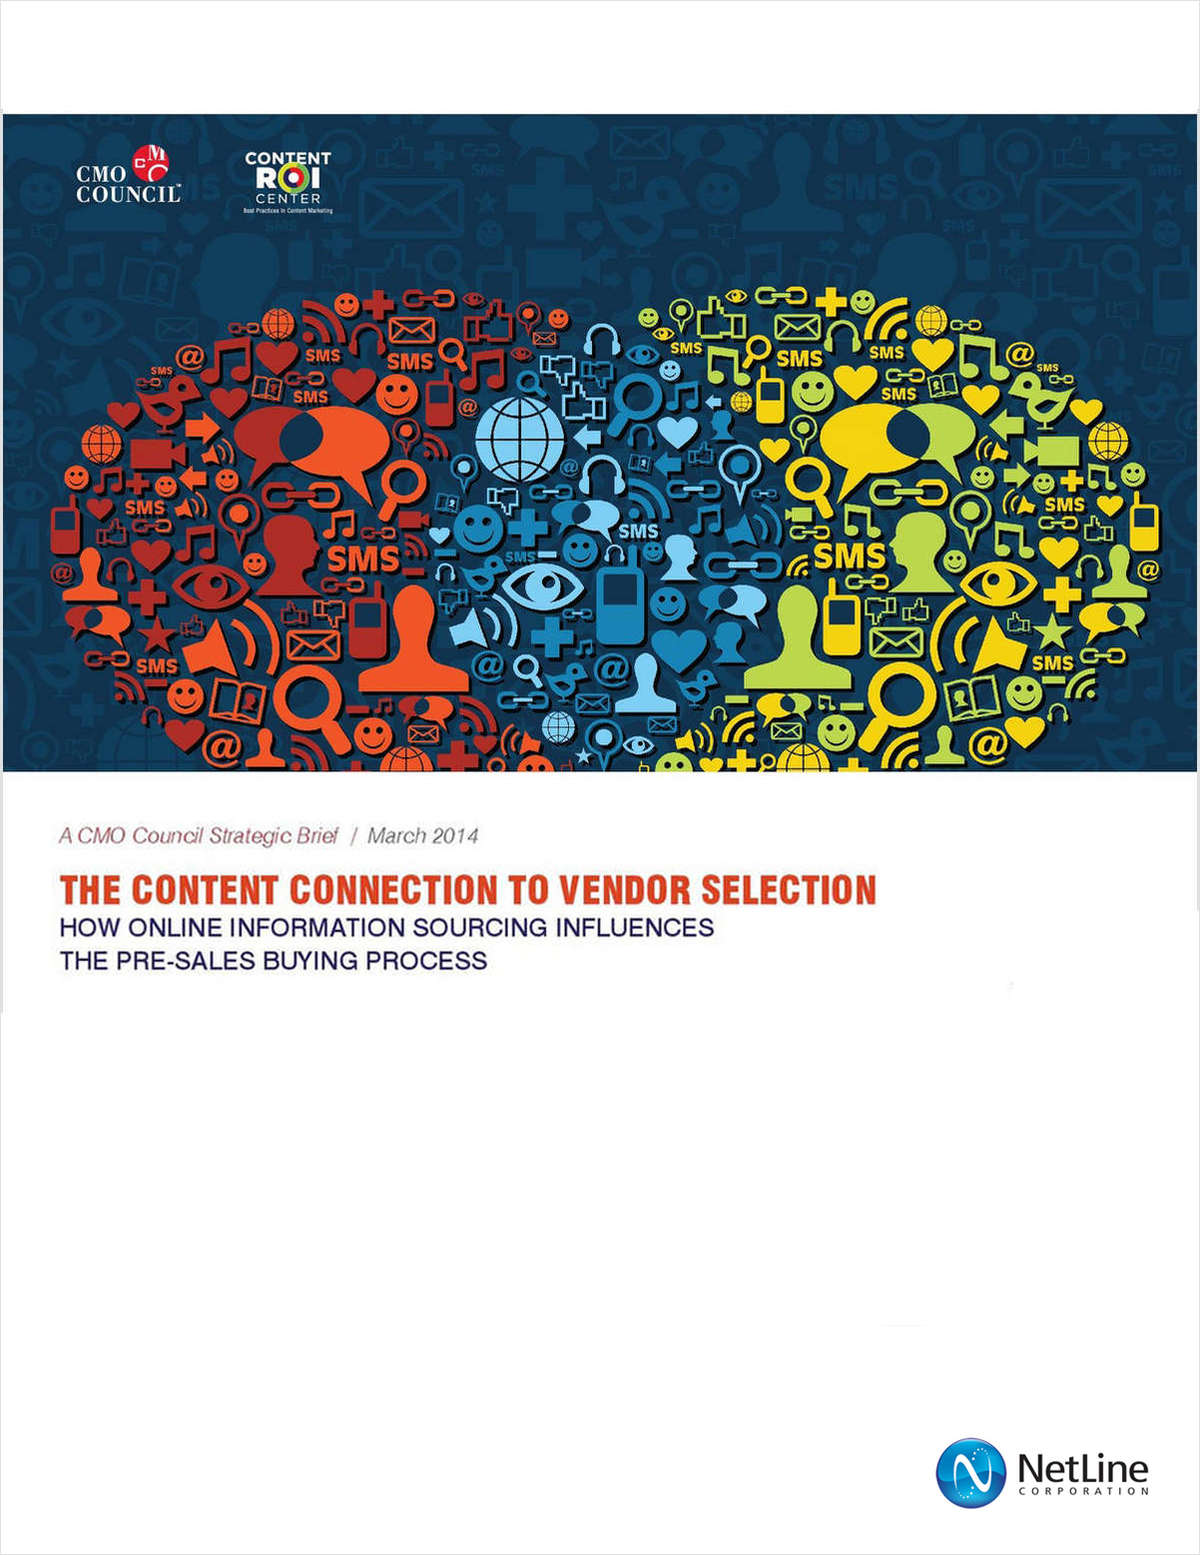 The Content Connection to Vendor Selection